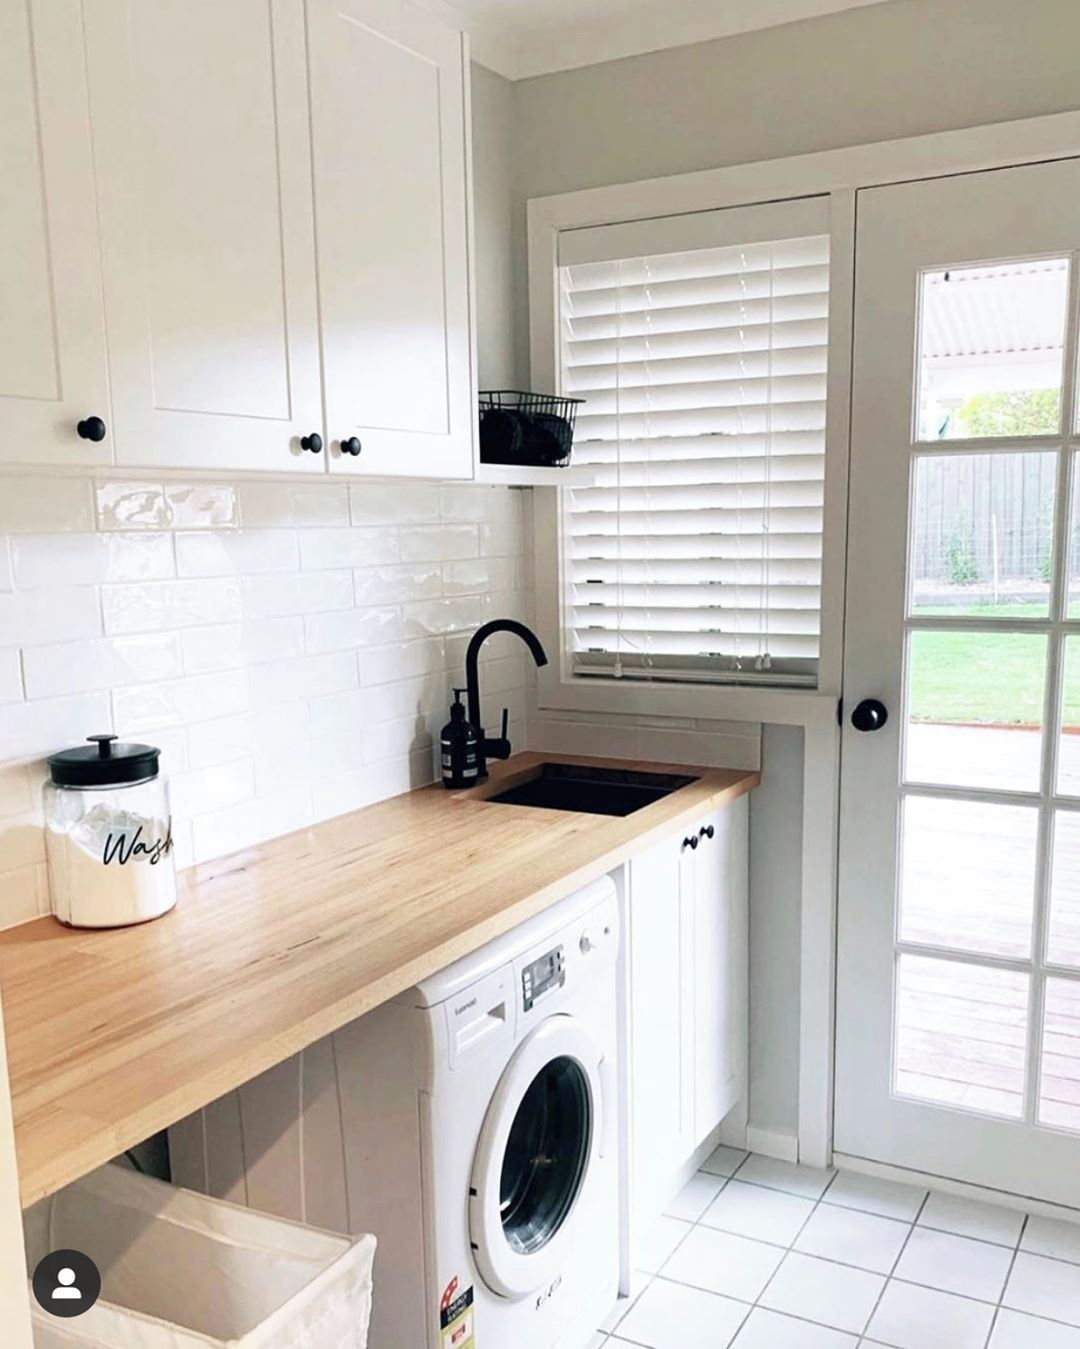 kaboodle kitchen on instagram flashback friday to when ourgisbornehome completed this on kaboodle kitchen storage id=32244